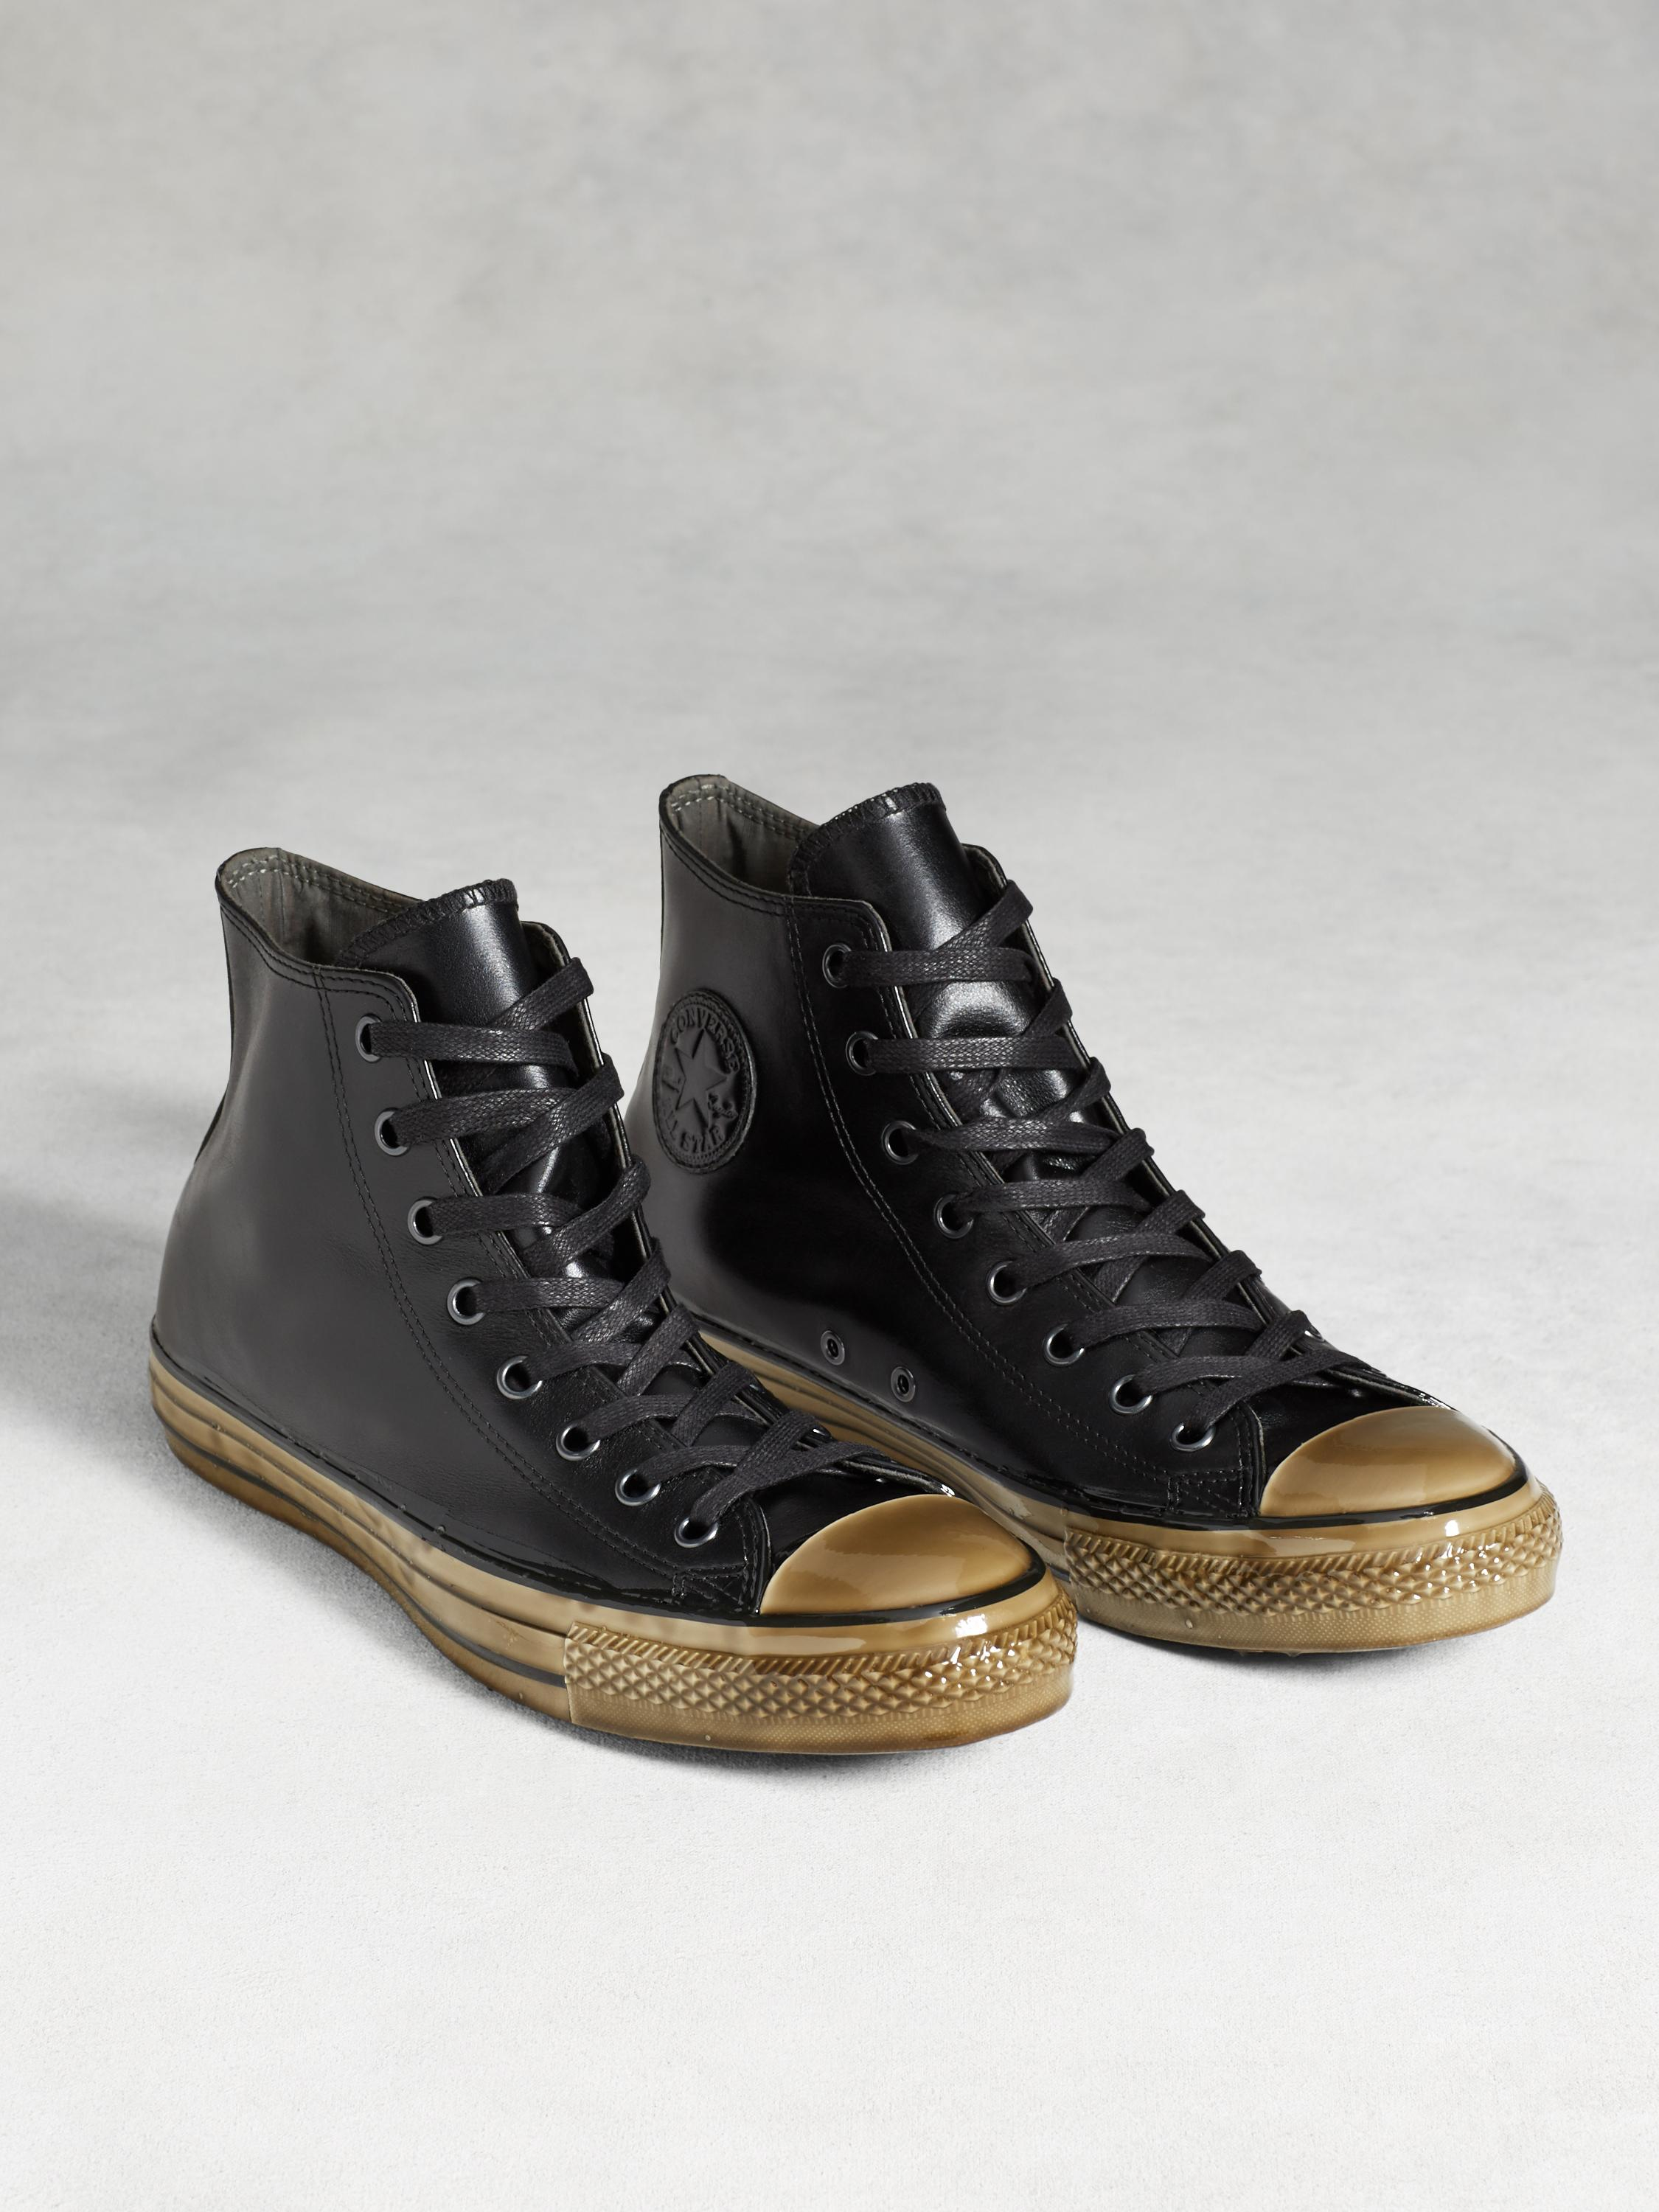 buy online 5c0ef e14a1 ... promo code for lyst john varvatos chuck taylor dipped outsole in black  for men b48c7 55366